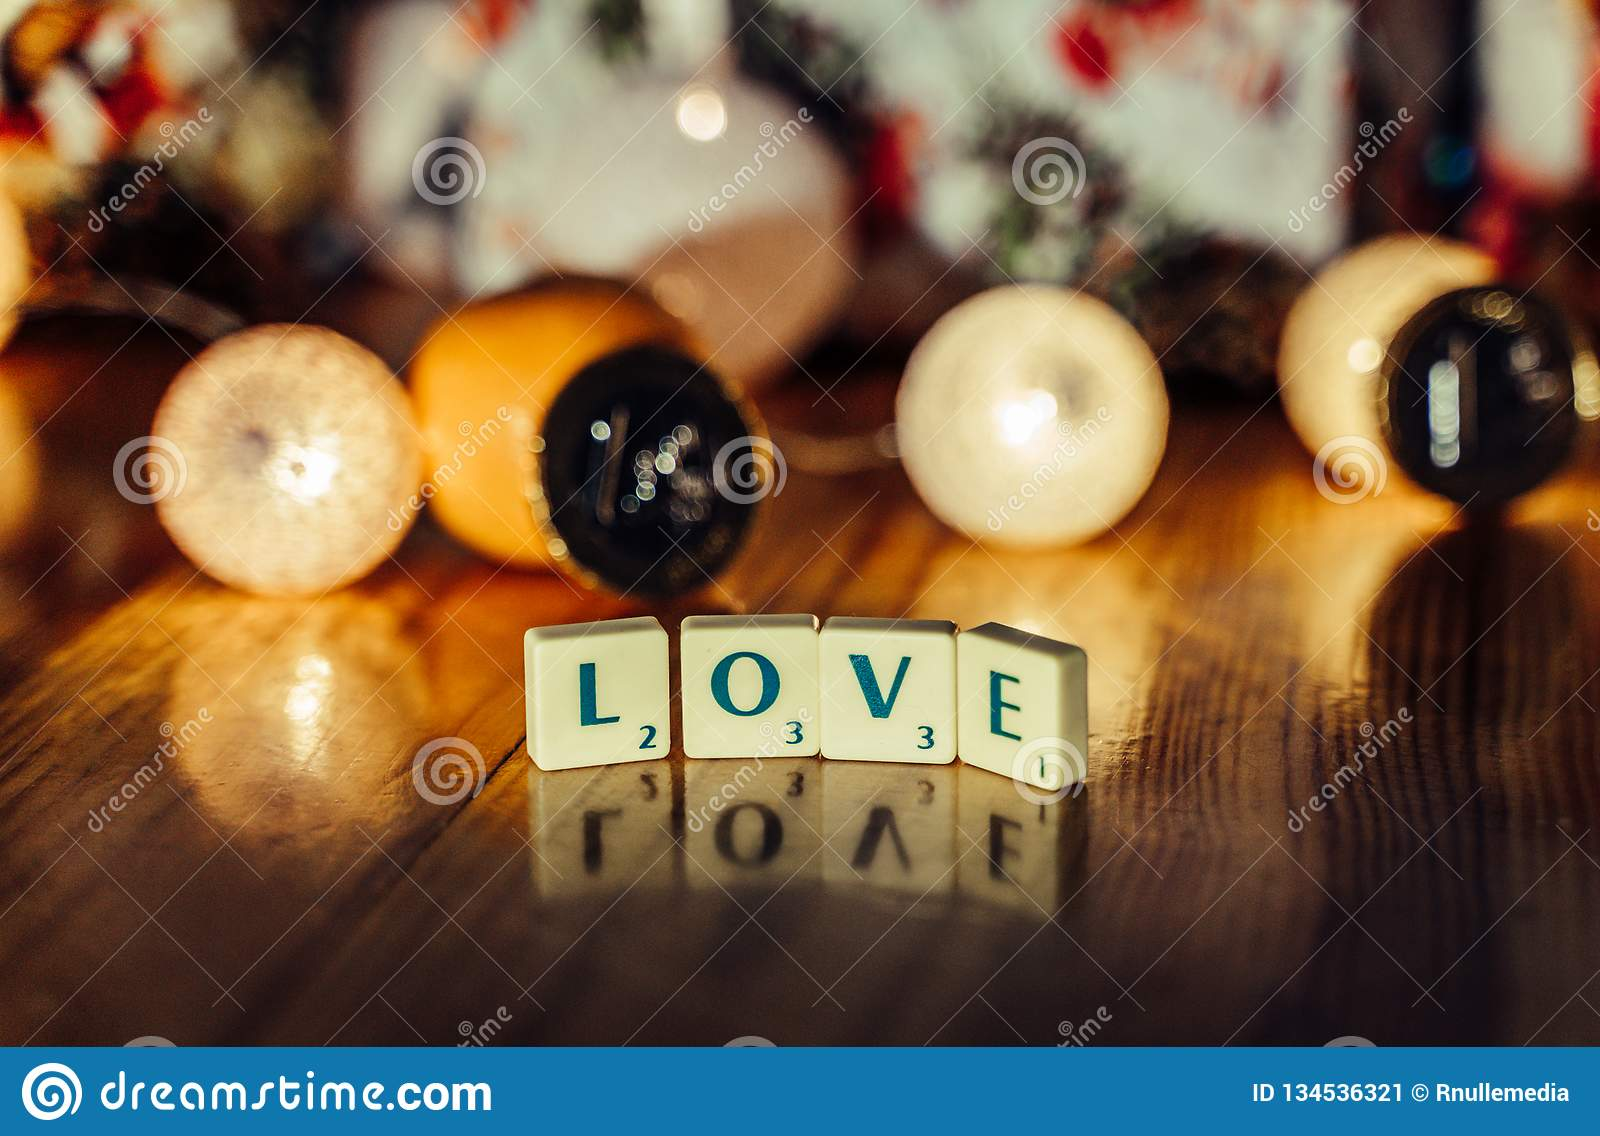 Word \'Love\' set on the Wooden Background from Letters of Board Game With the Blurred Christmas Lights, Fruits and Presents in th. E Background together with stock image